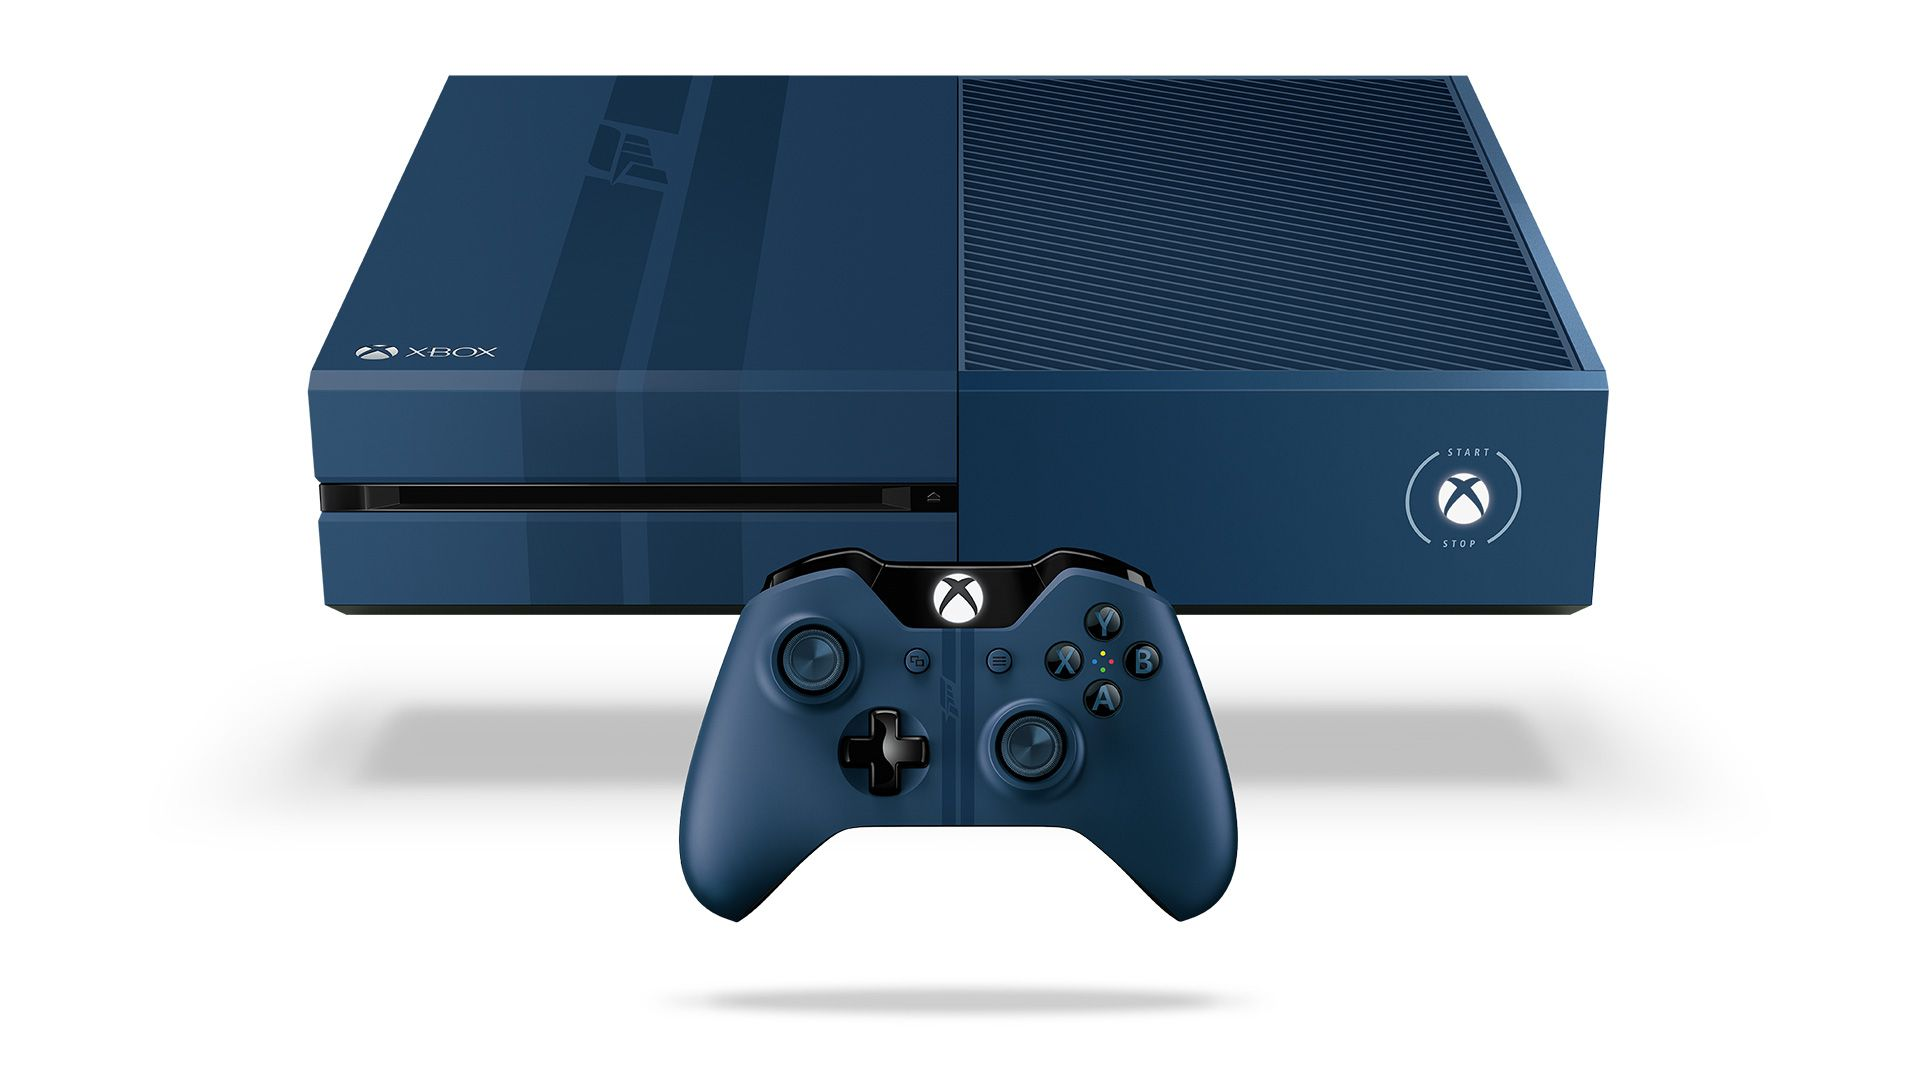 Forza 6 Bundled With Limited Edition Blue Xbox One For Forza S 10th Anniversary Polygon